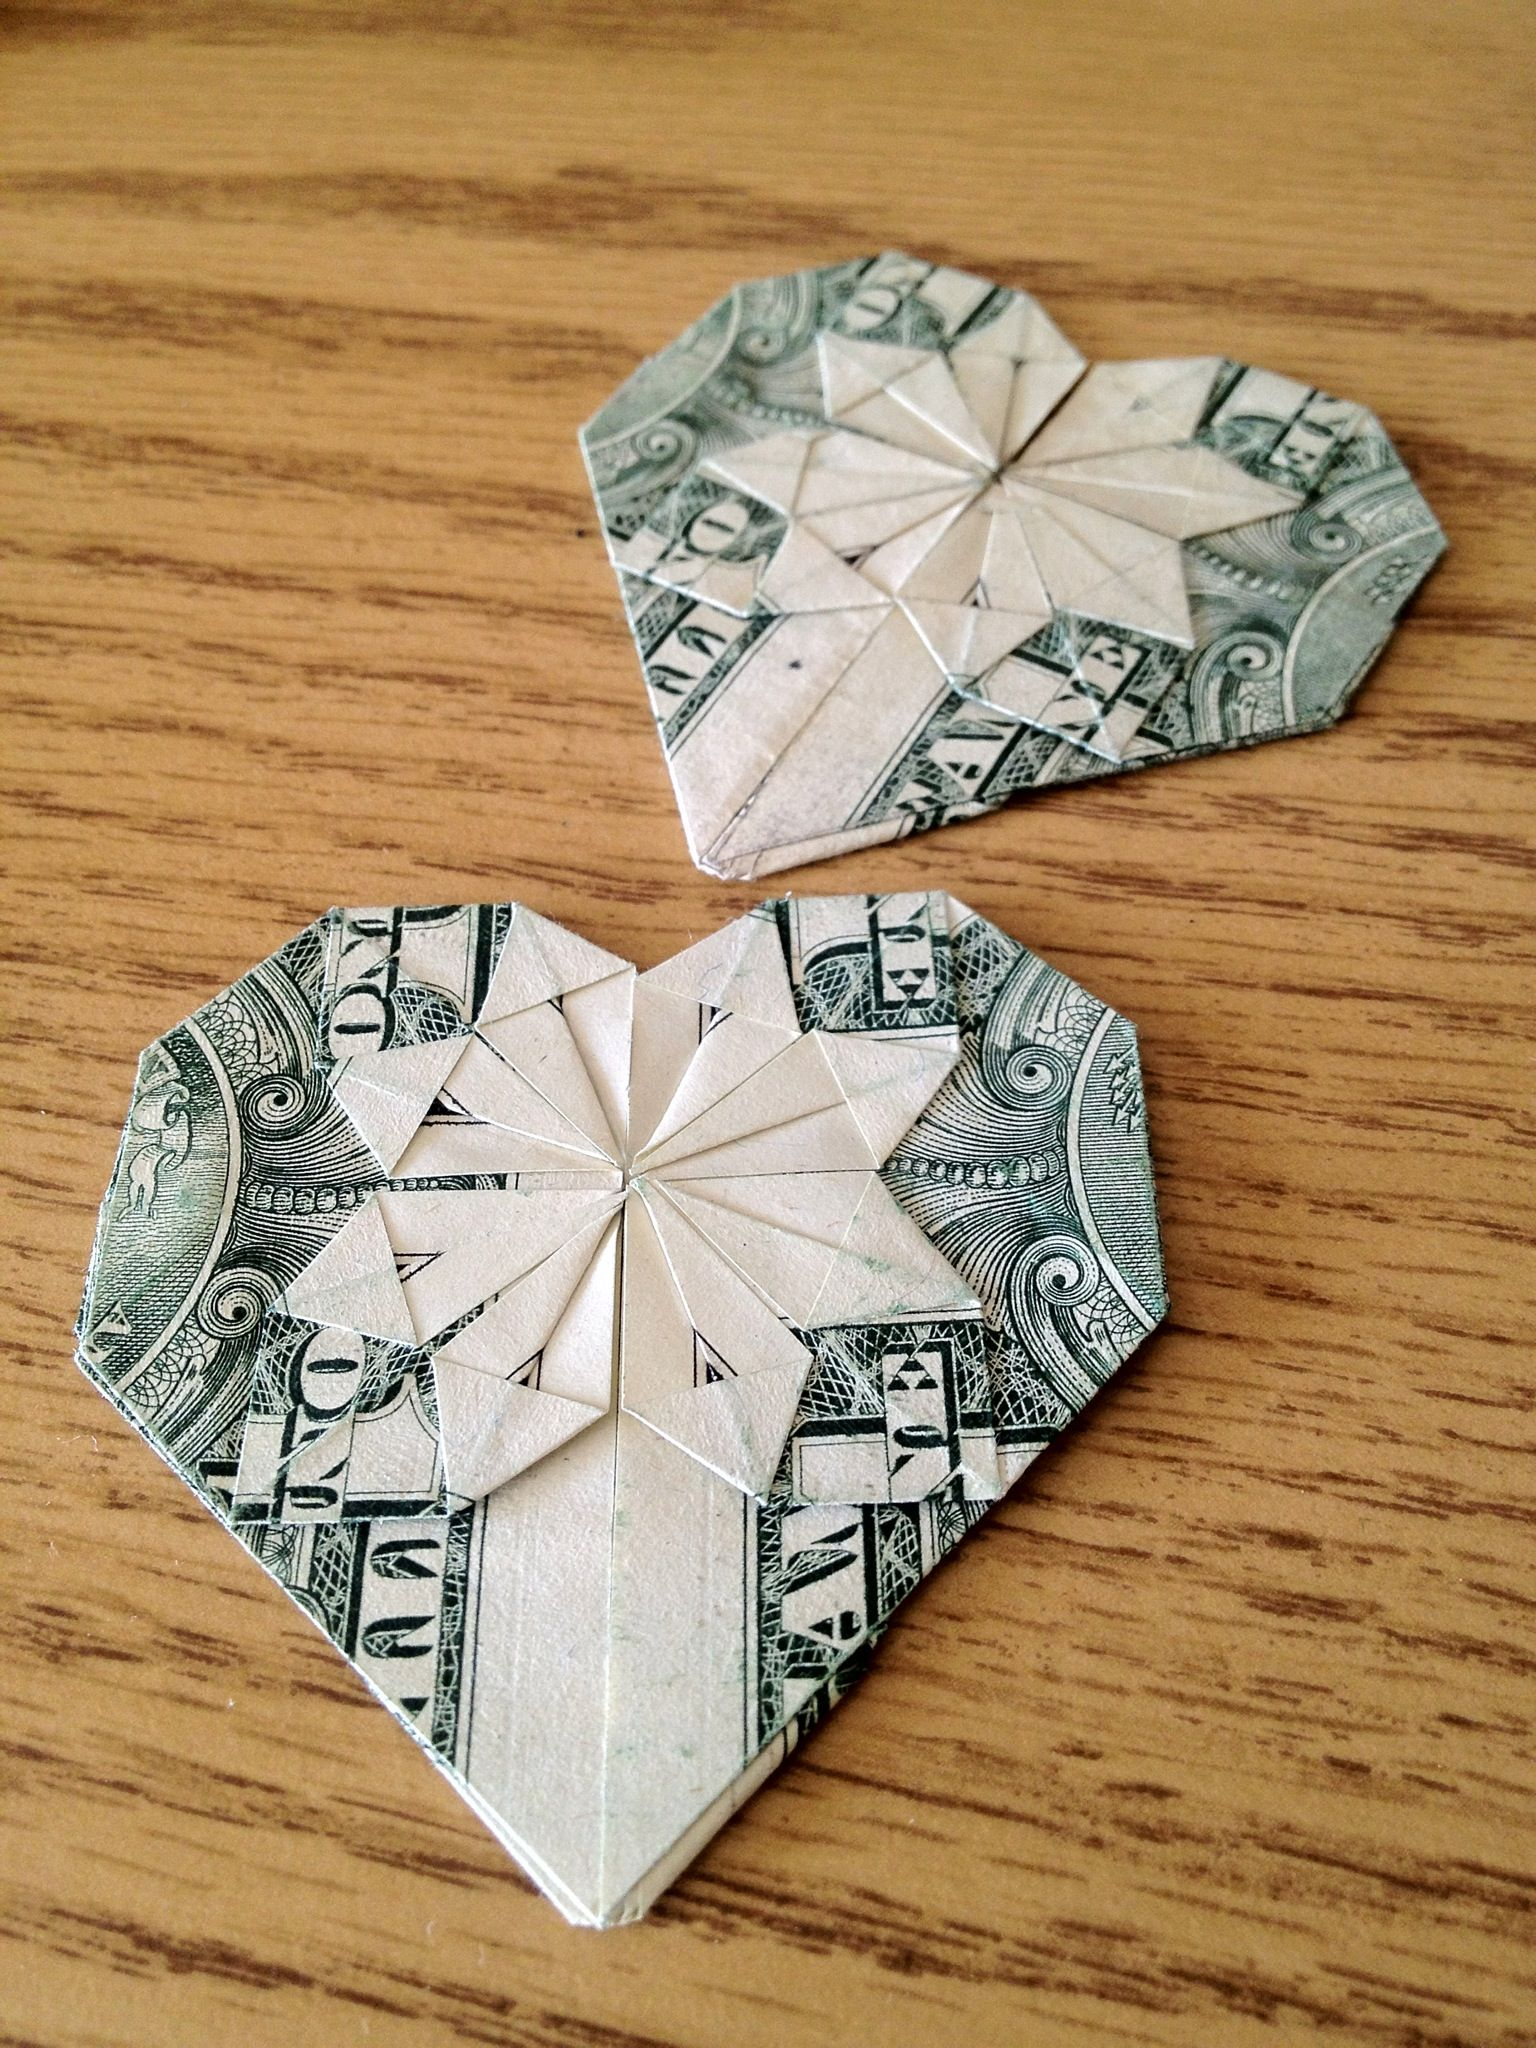 How to Make an Origami Heart From a Dollar | Recipe ... - photo#37